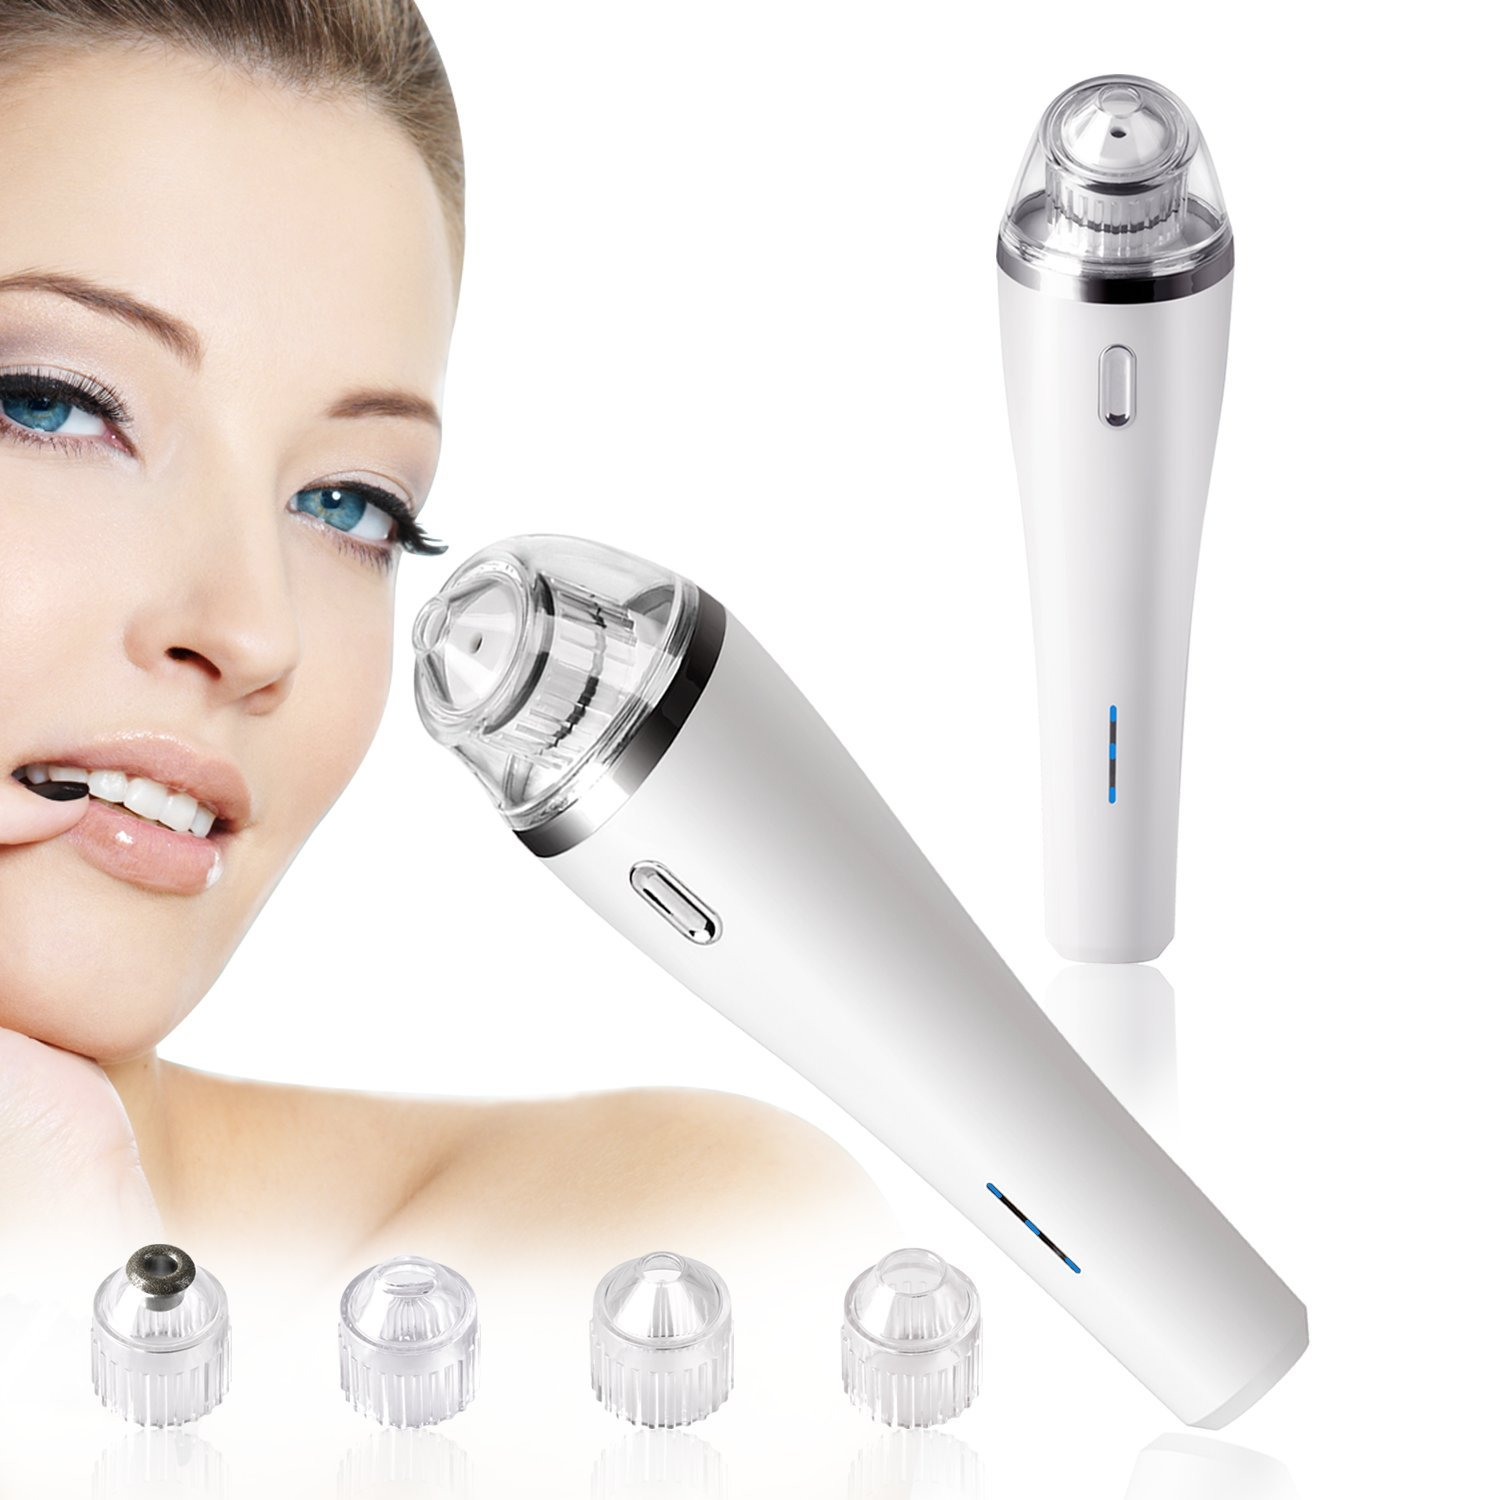 Electronic Blackhead Remover, 2018 Daluo New Arrival Vacuum Facial Pore Cleaner Comedo Suction Acne Removal (Pearl White)